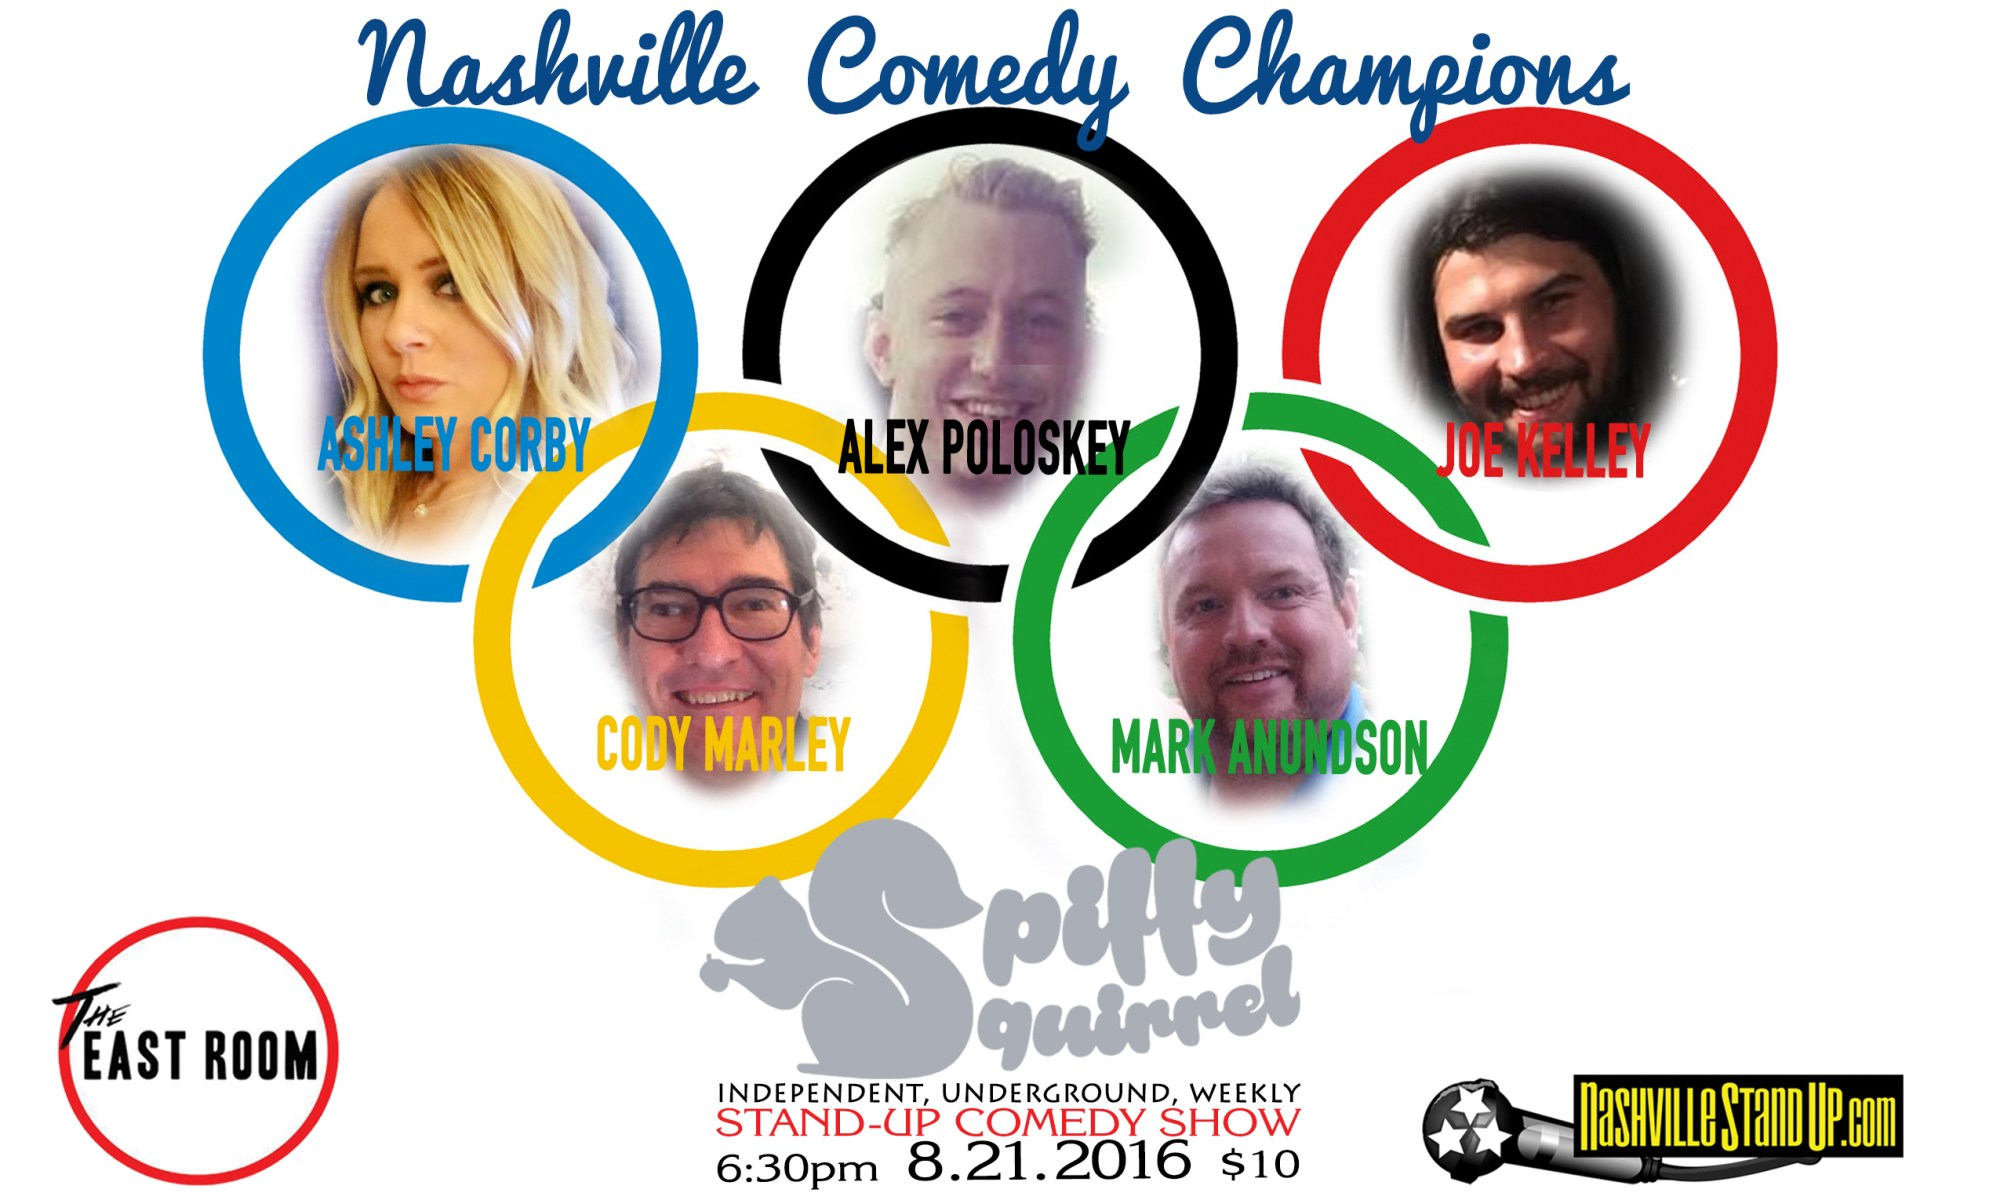 Nashville Comedy Champions: Ashley Corby, Alex Poloskey, Joe Kelley, Cody Marley, Mark Anundson at SPiFFY SQUiRREL Comedy Show at The East Room 8/21/2016.